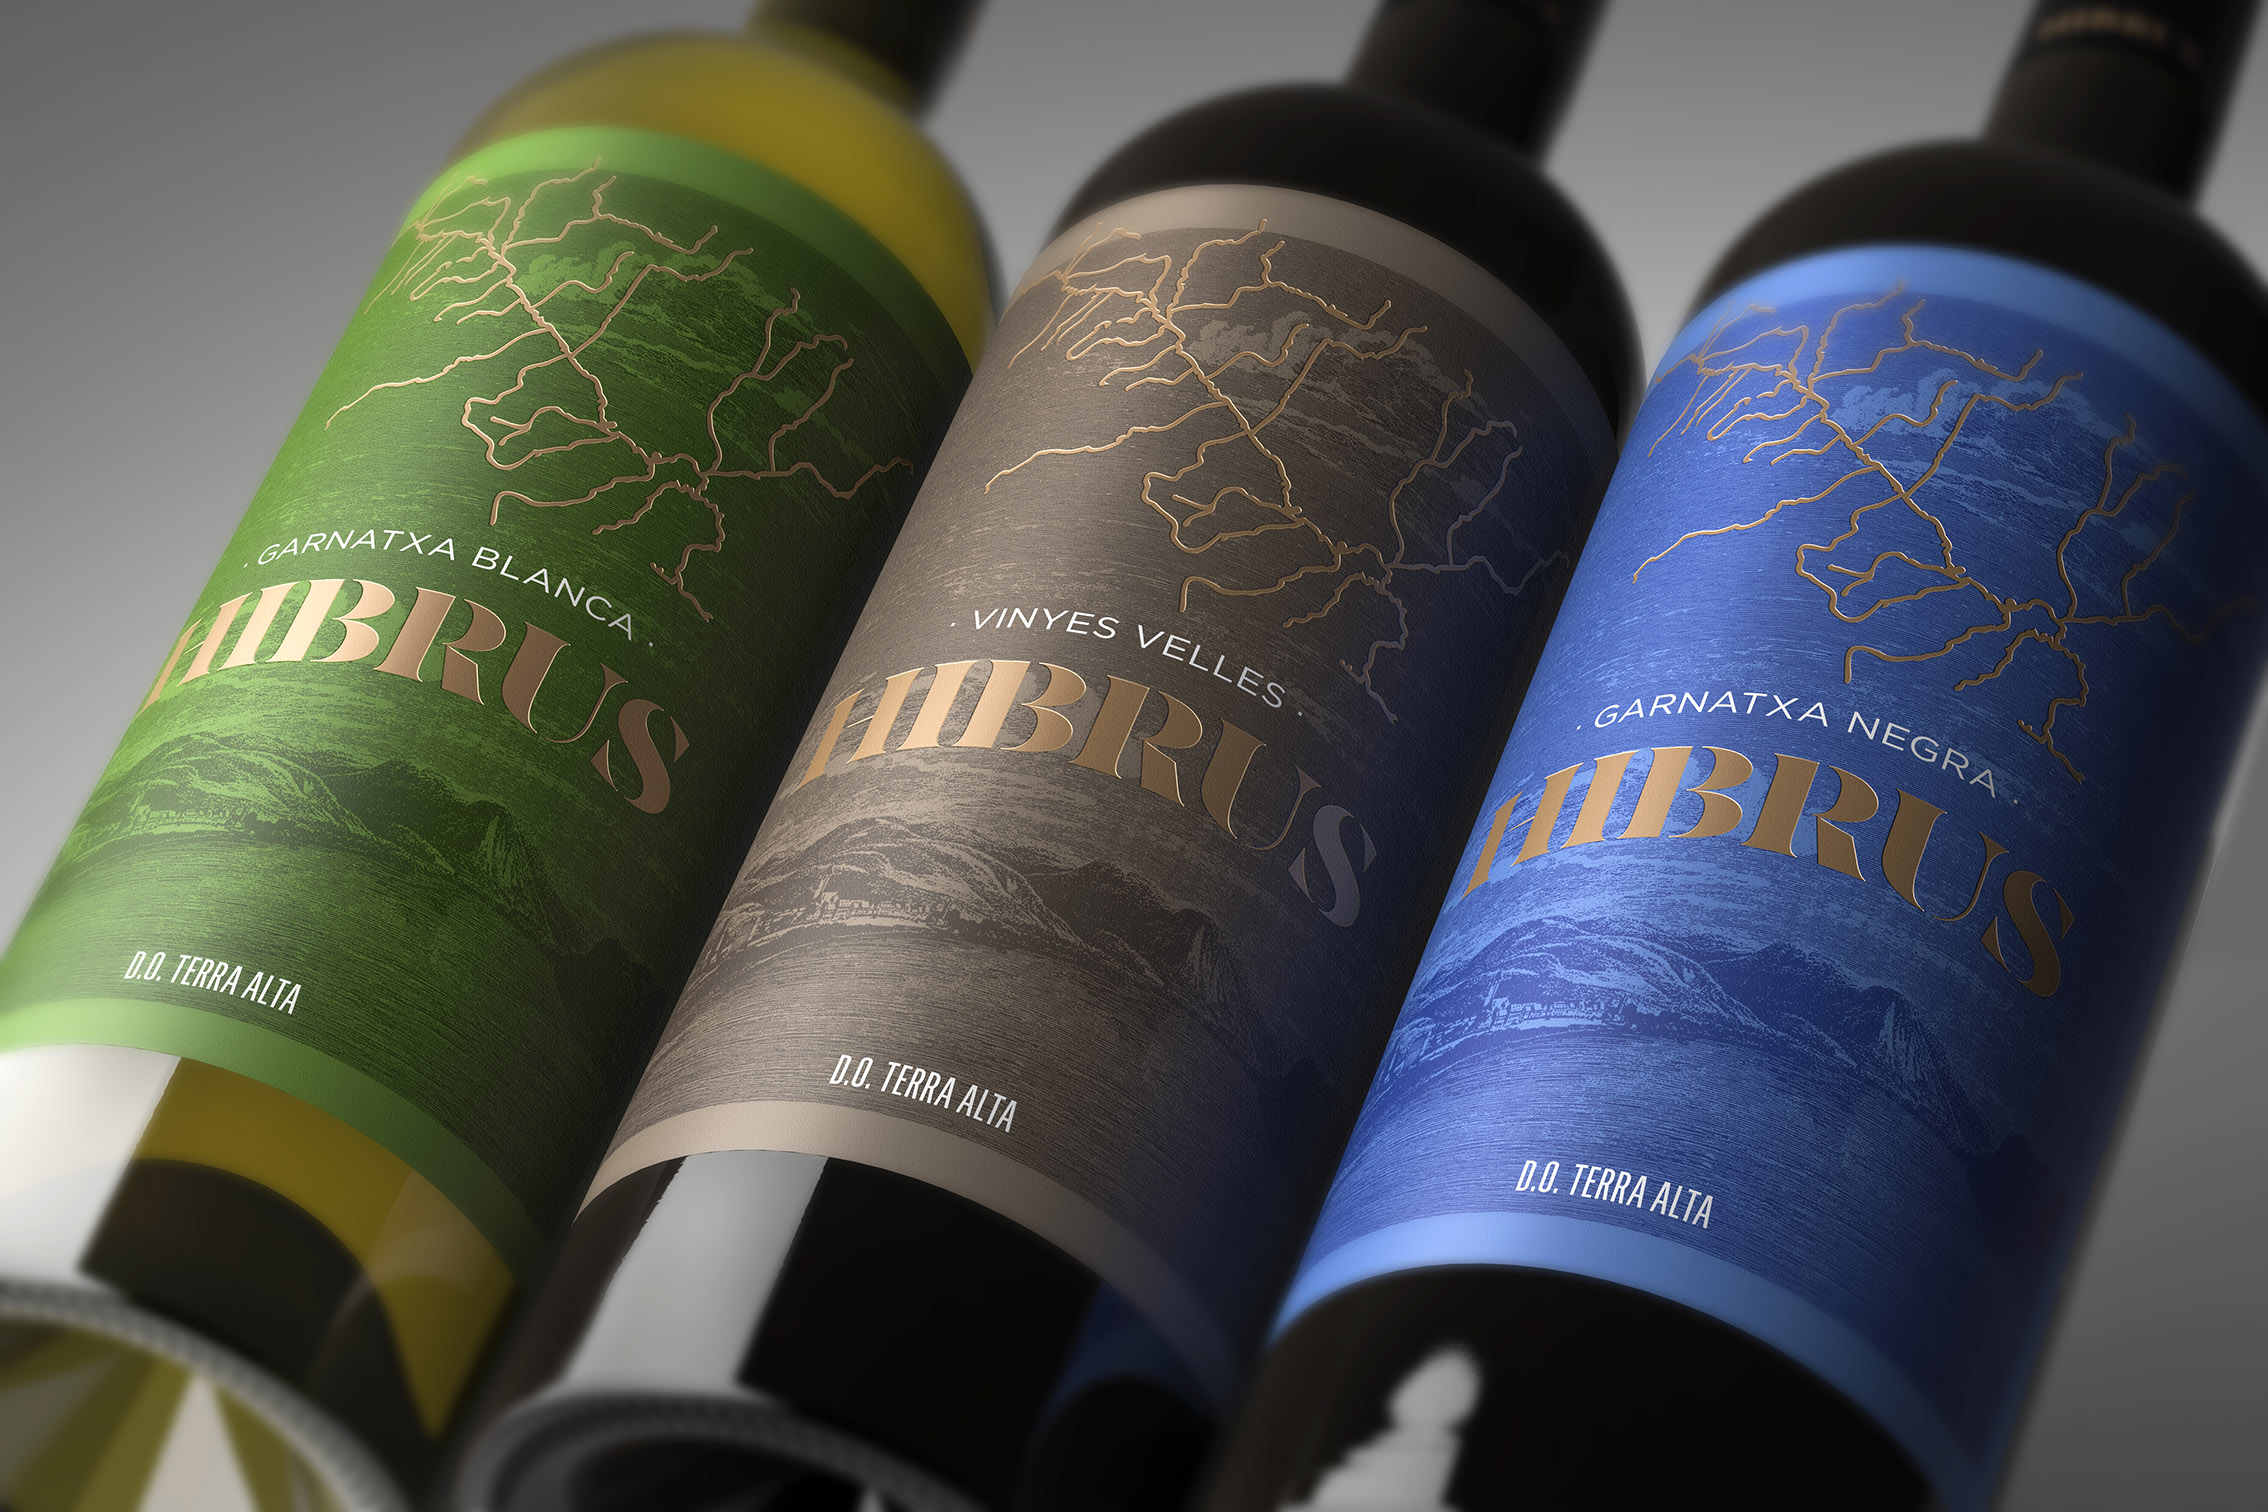 Bulldog Studio Creates Hibrus New Range of Wine Labels